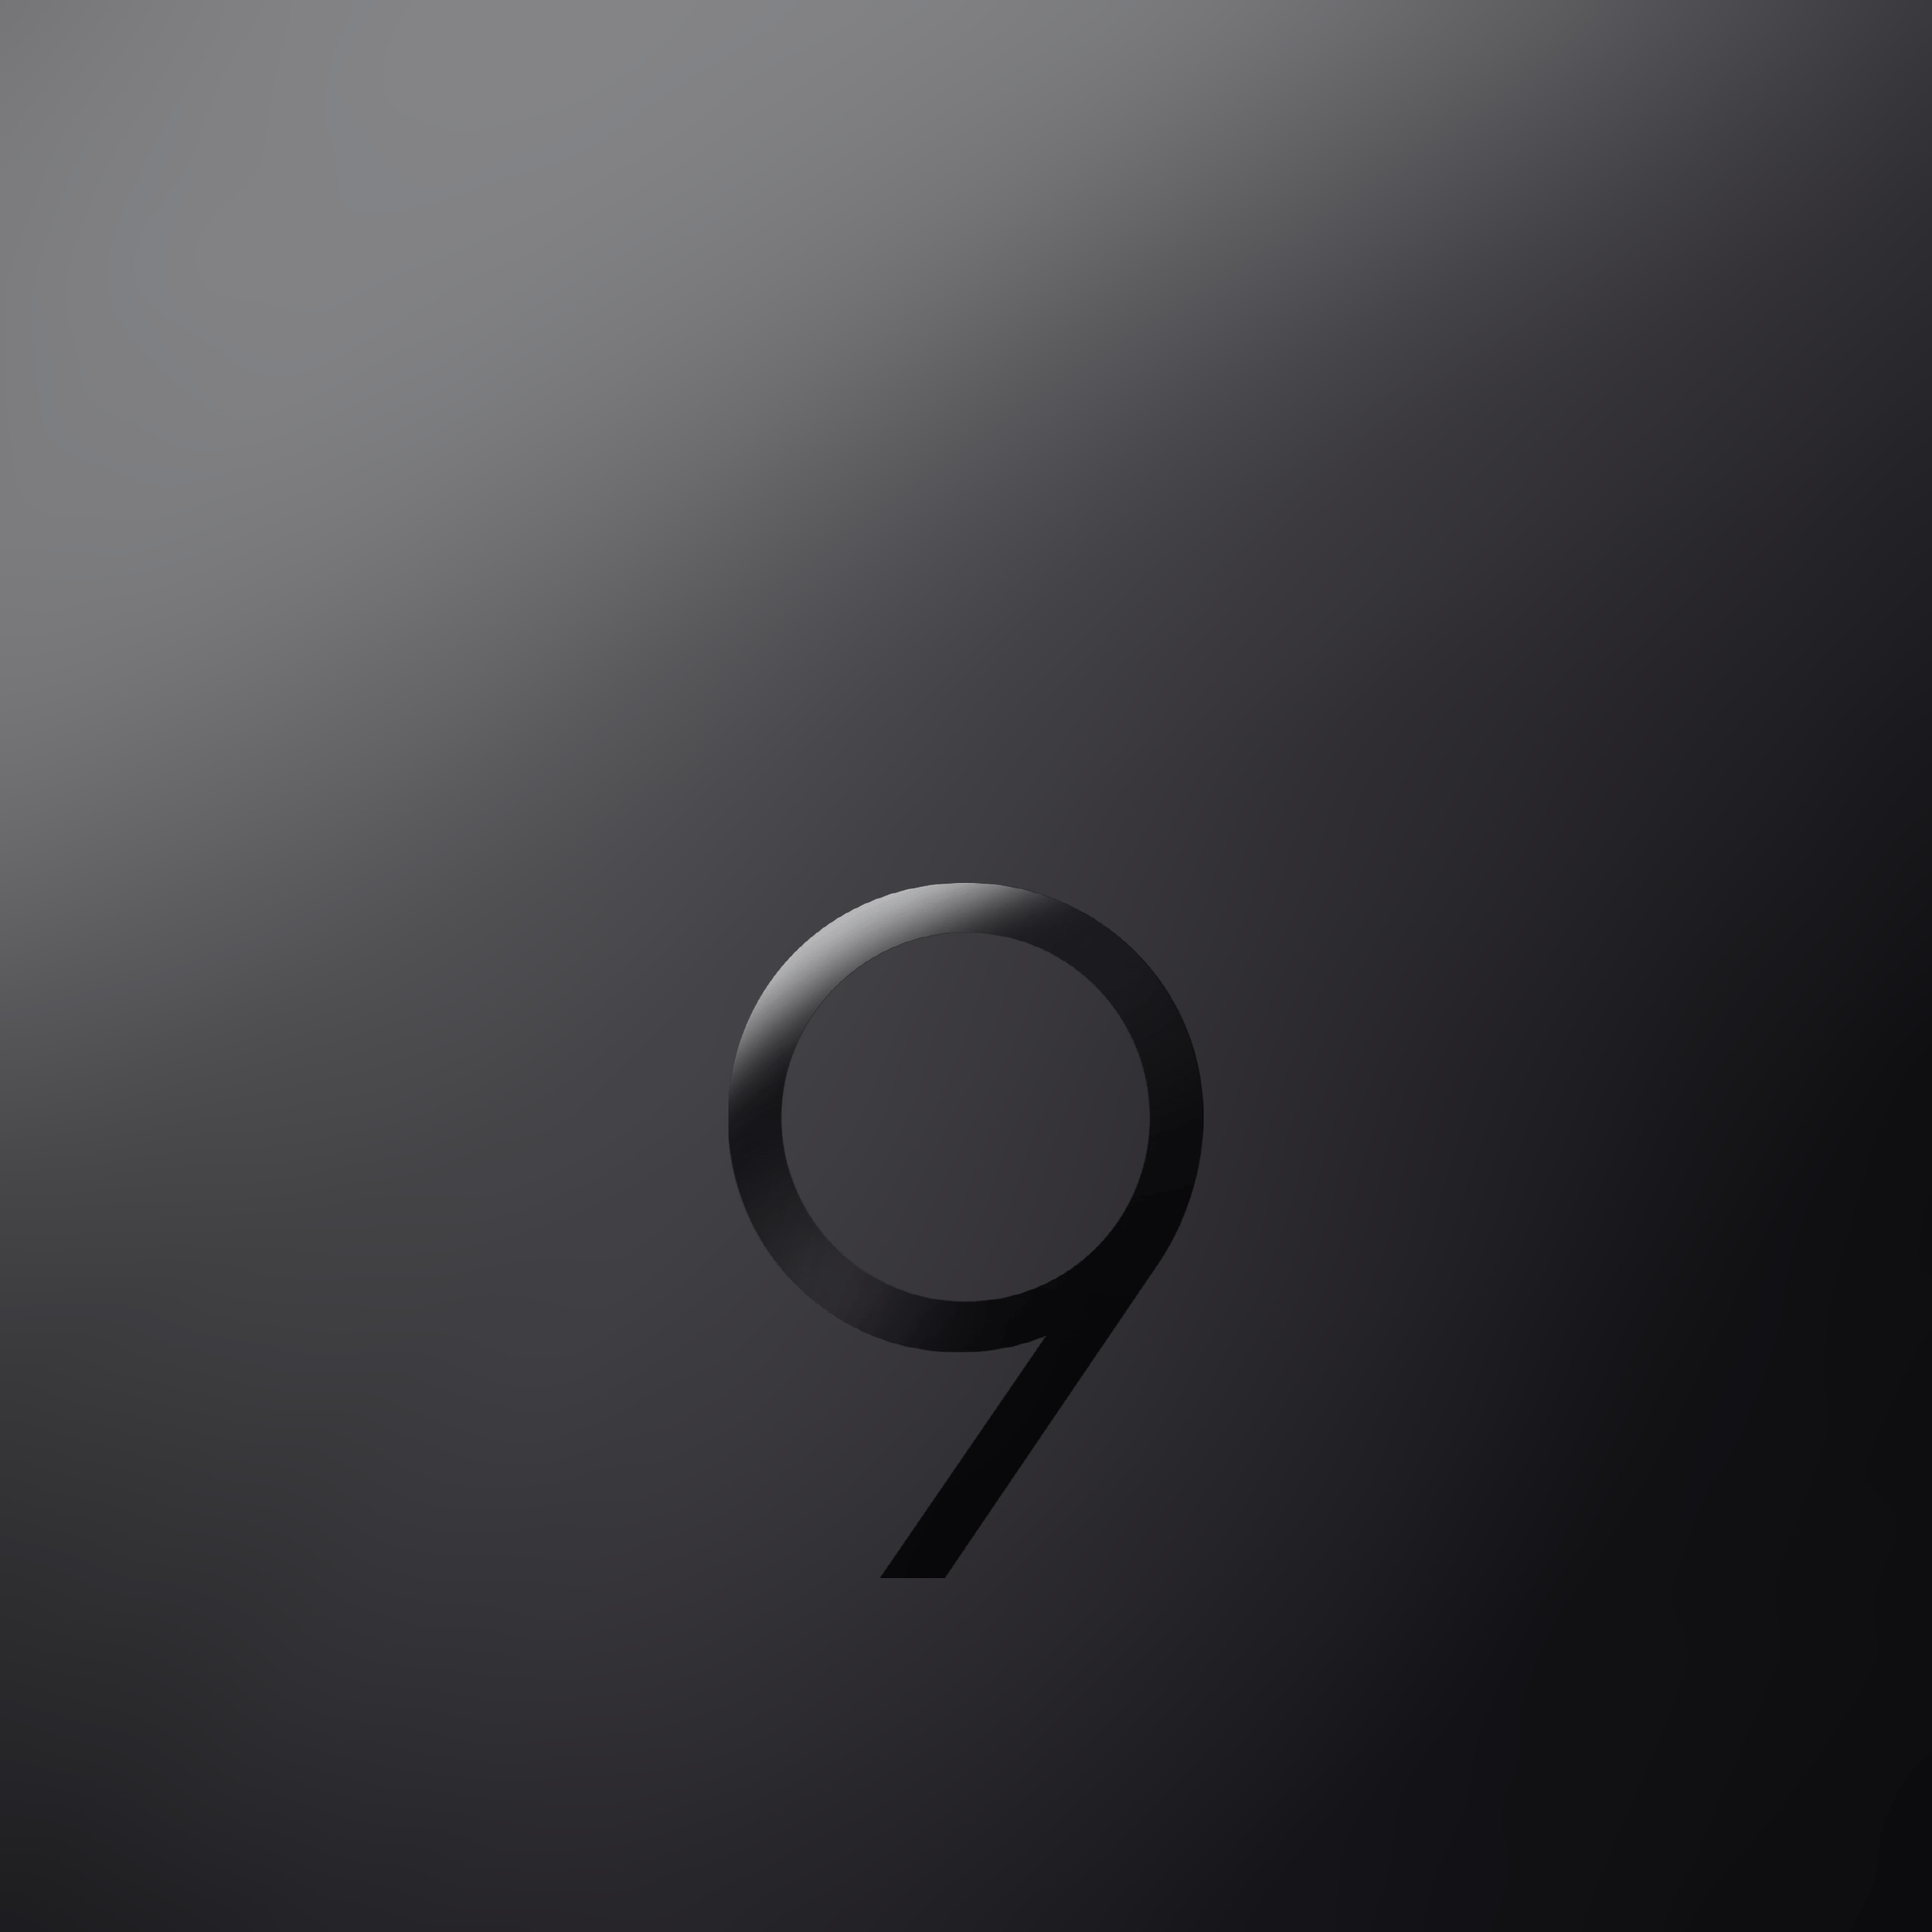 Galaxy S9 Wallpaper 14